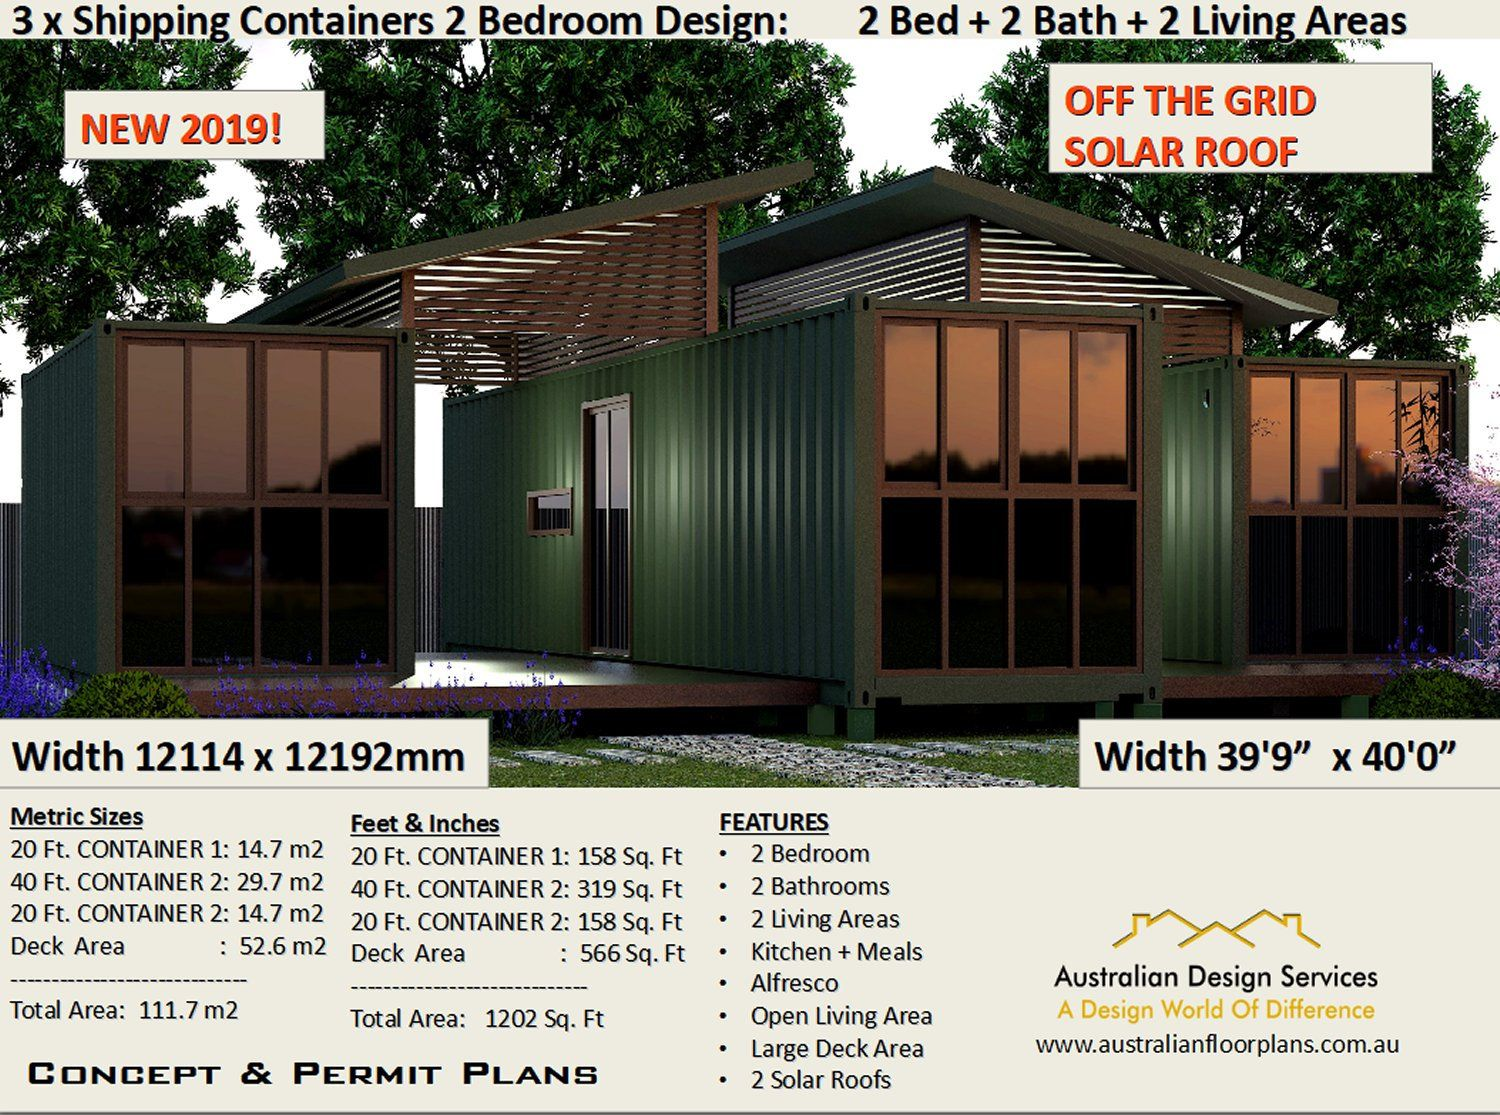 2 Bedroom Shipping Container House Plans 2 Bed Container Etsy Shipping Container House Plans Container House Plans Container House